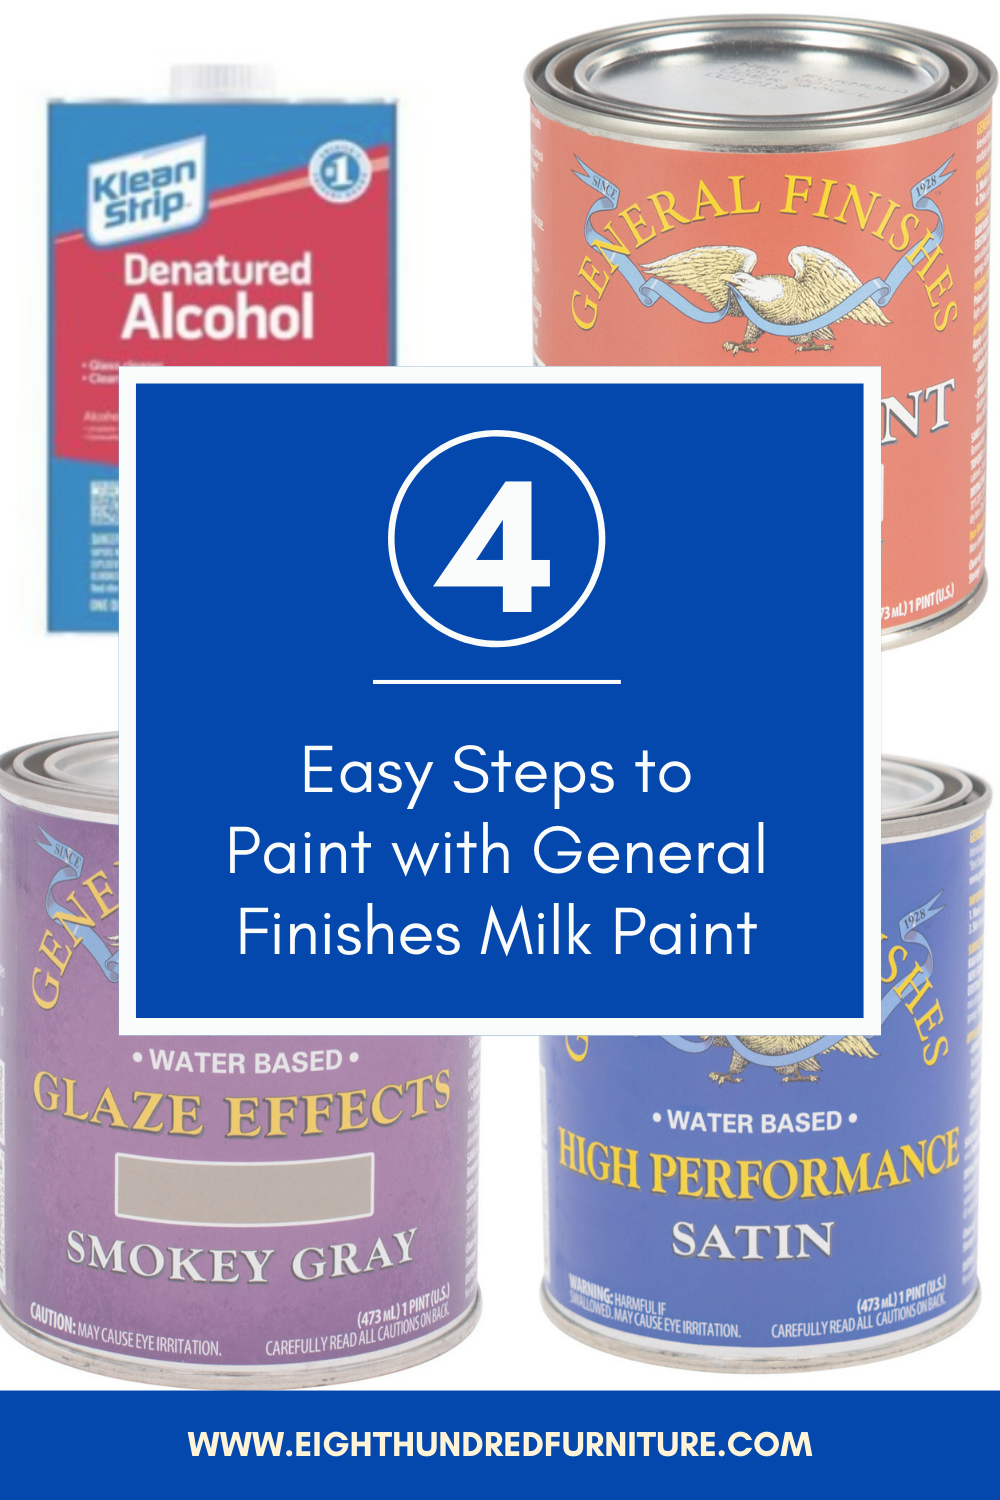 4 steps to paint with General Finishes Milk Paint